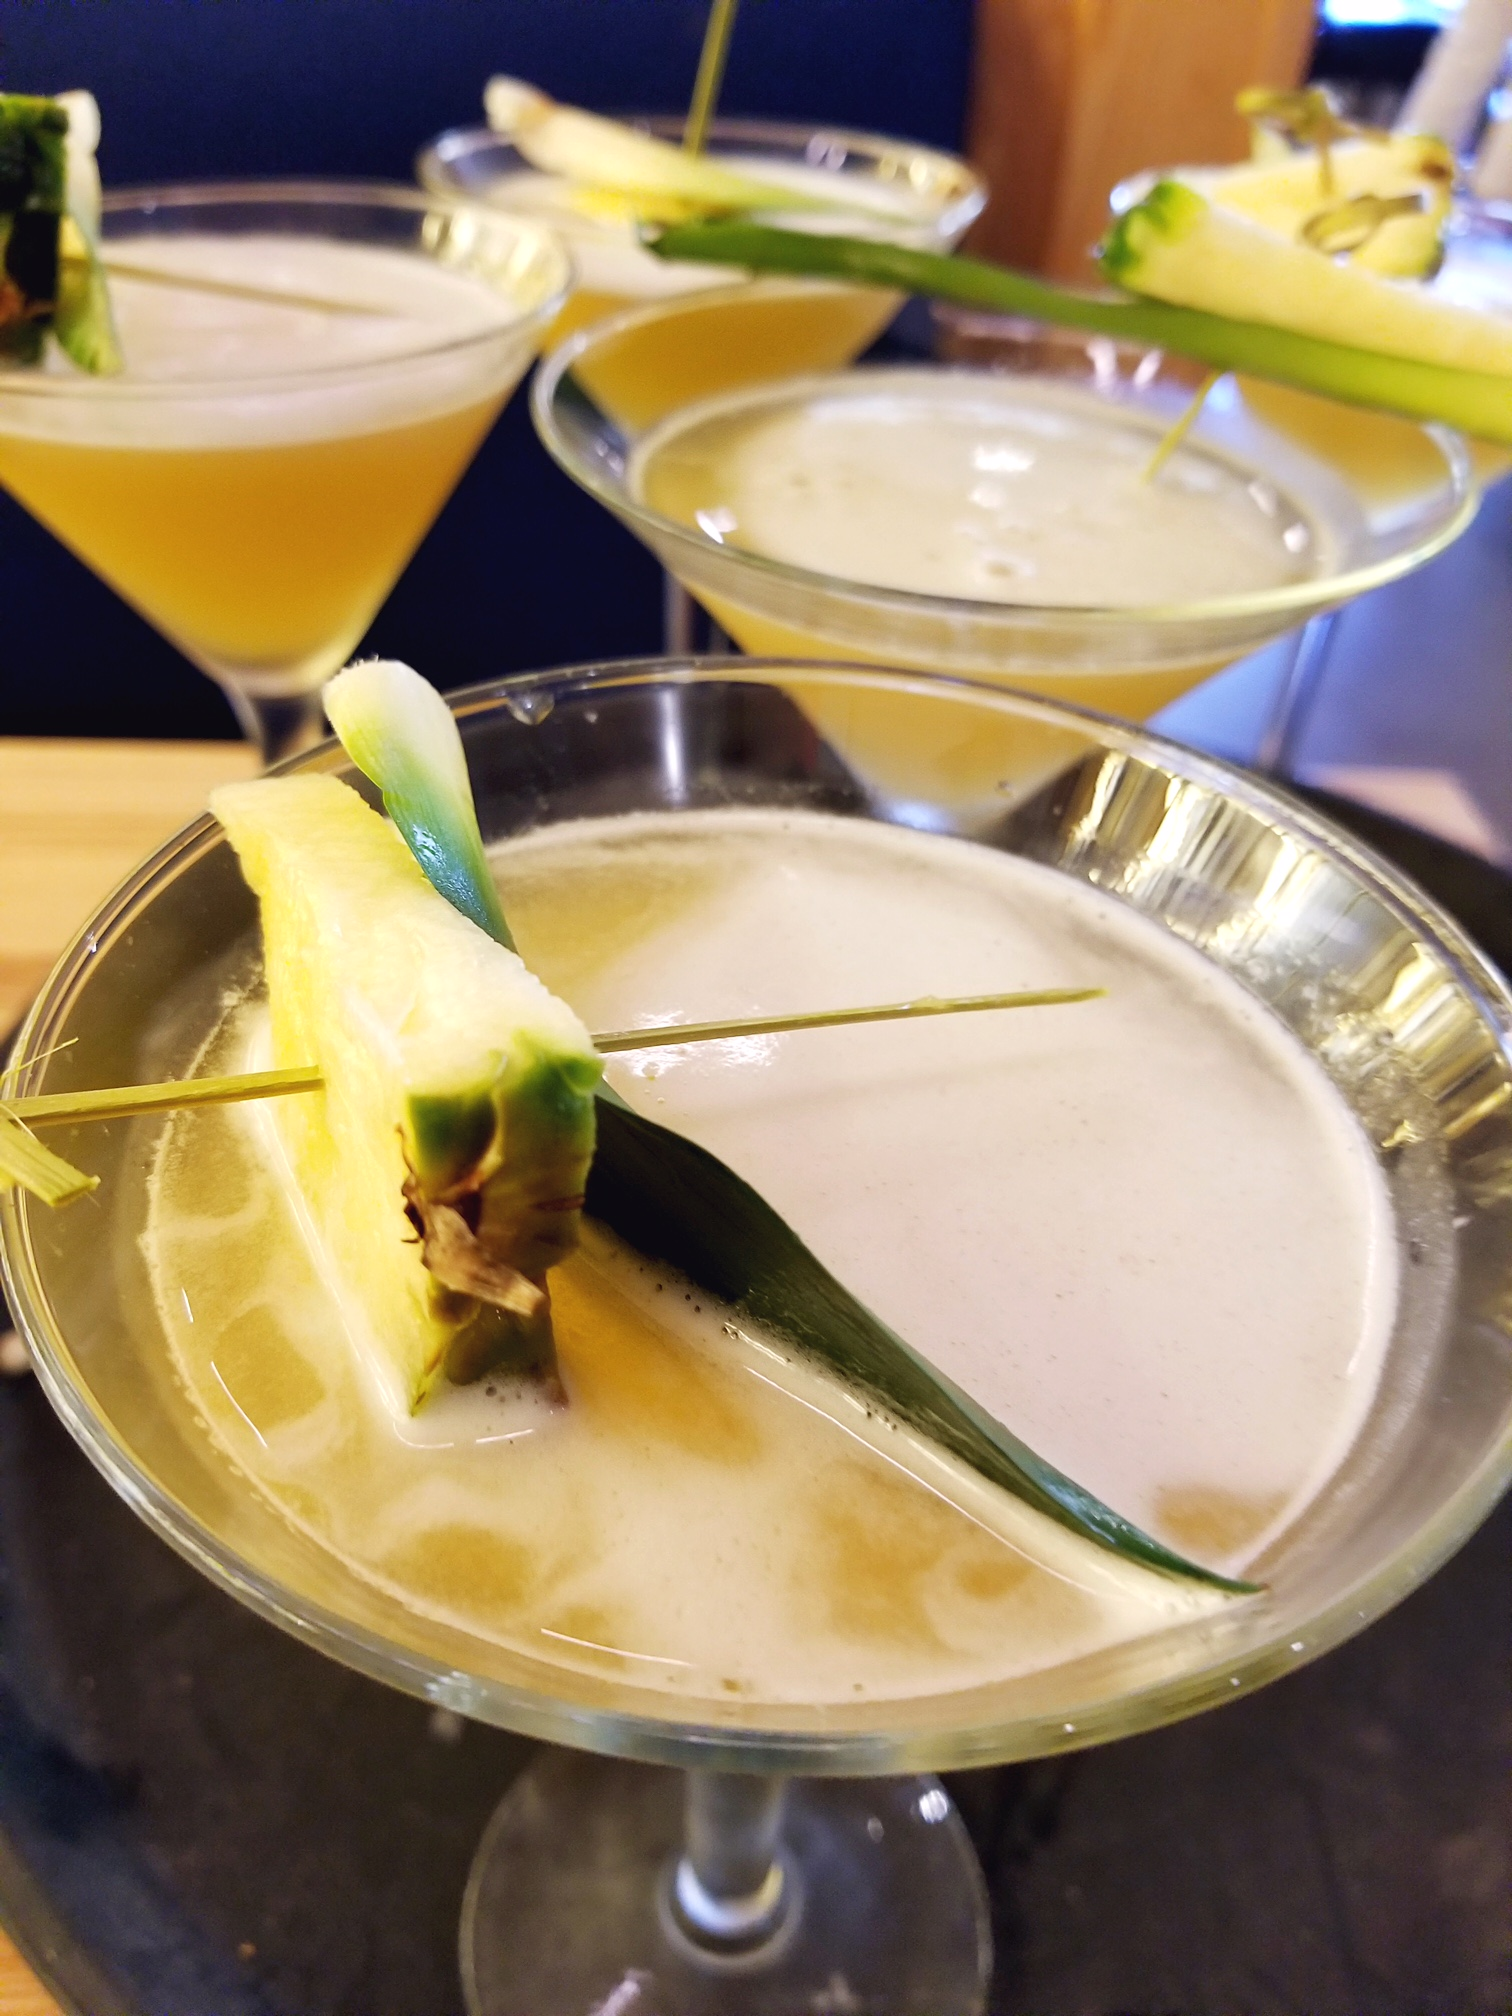 Amorada tequila cocktail recipe: The Pineapple Amortini